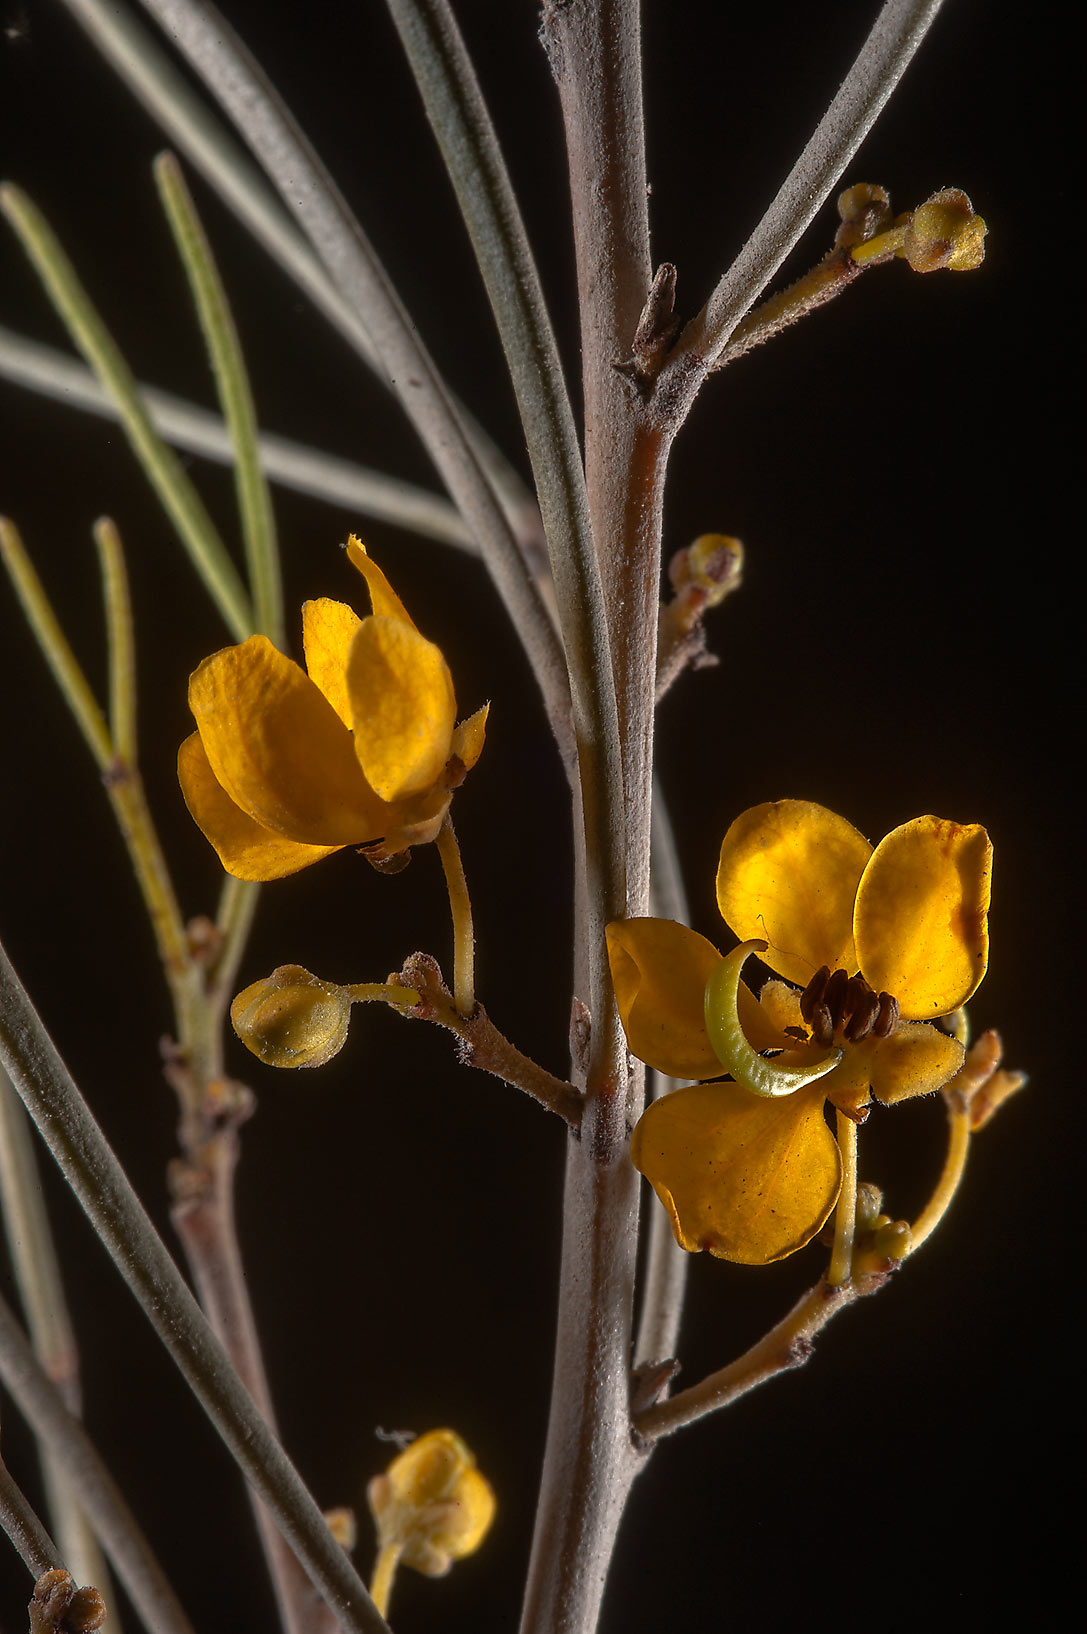 Flowers of fine-leaf desert cassia (Cassia...taken from Al Luqta area. Doha, Qatar